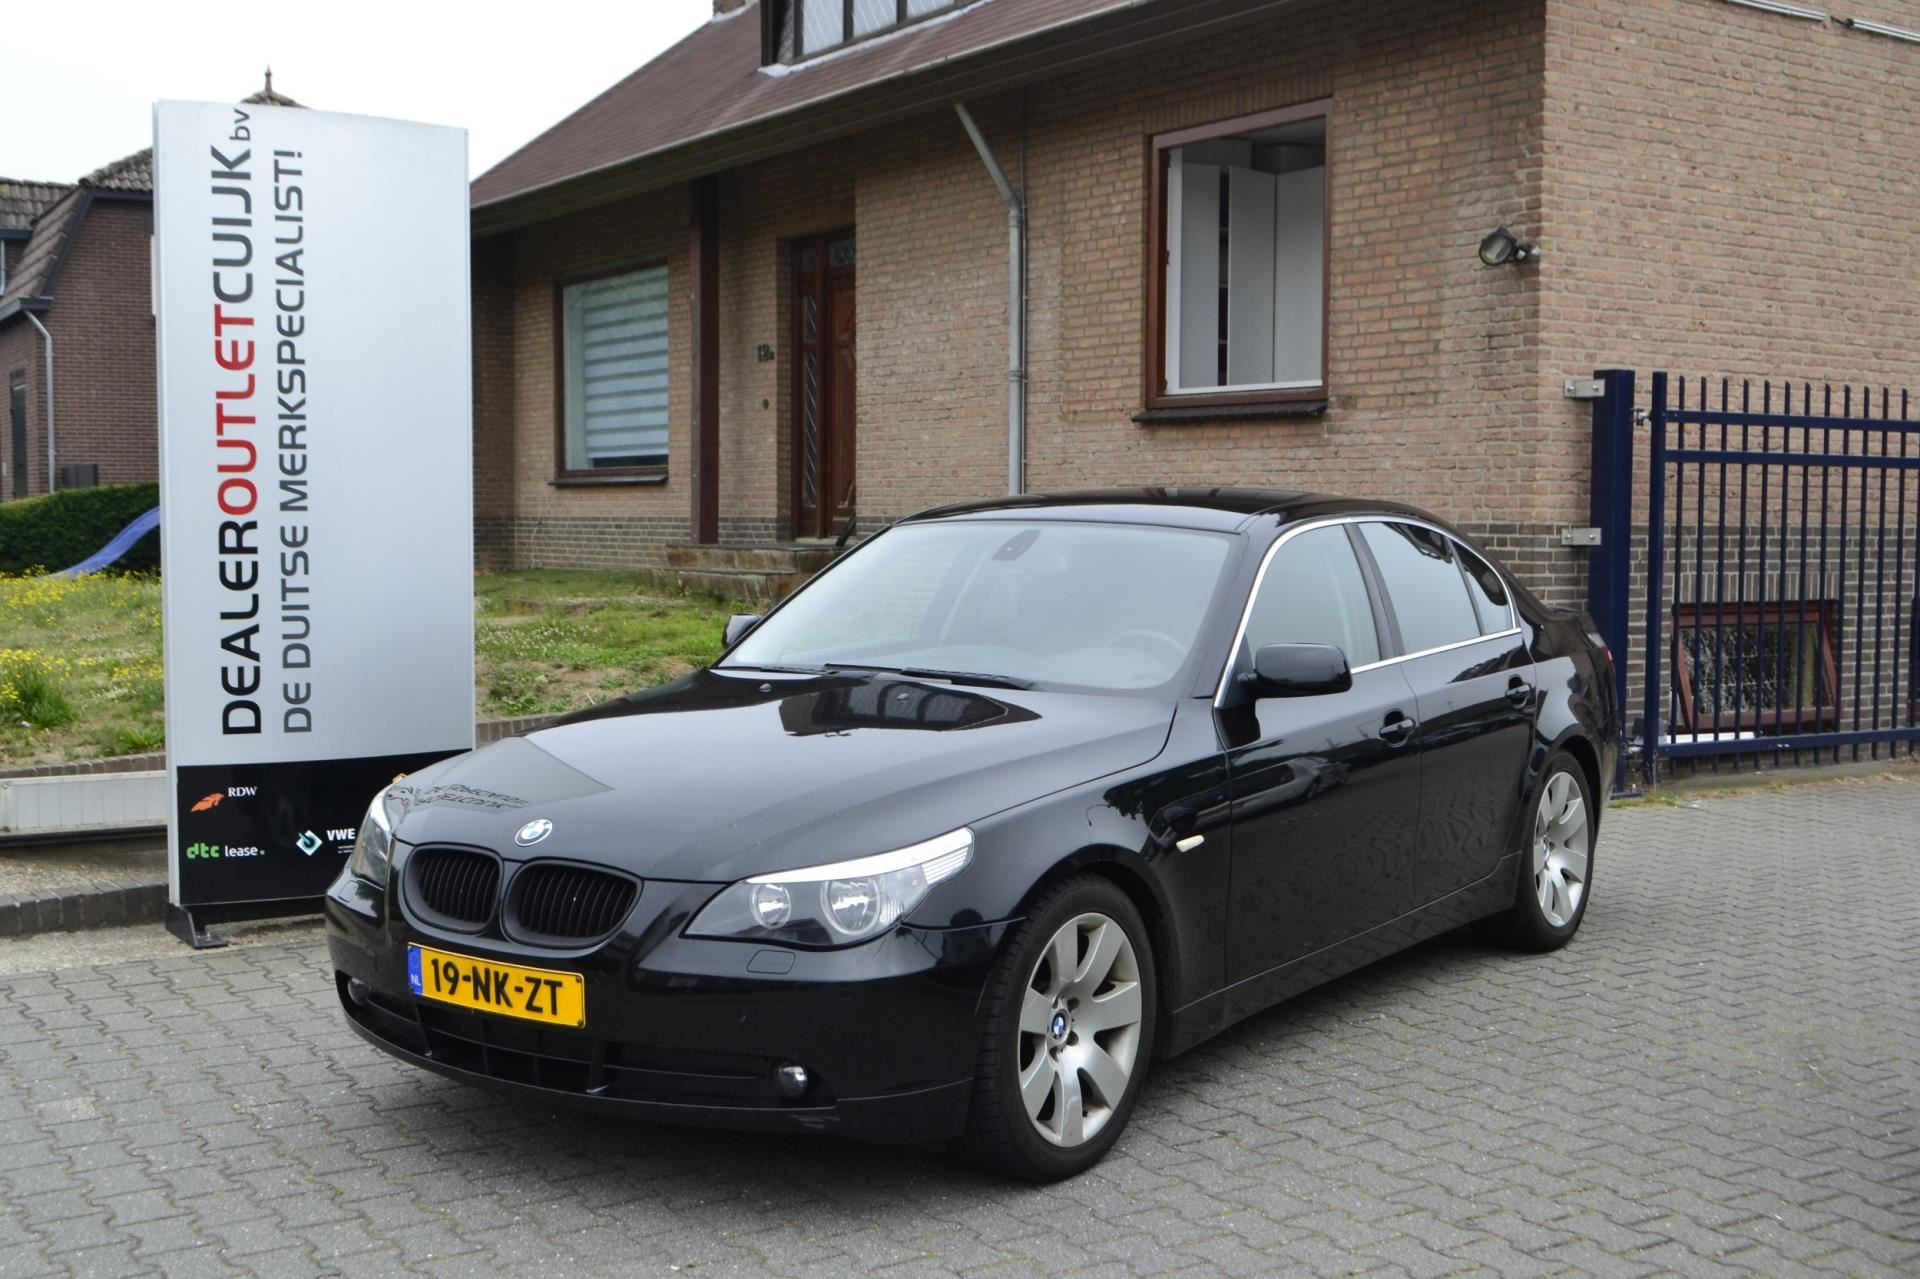 BMW 5-serie occasion - Dealer Outlet Cuijk b.v.